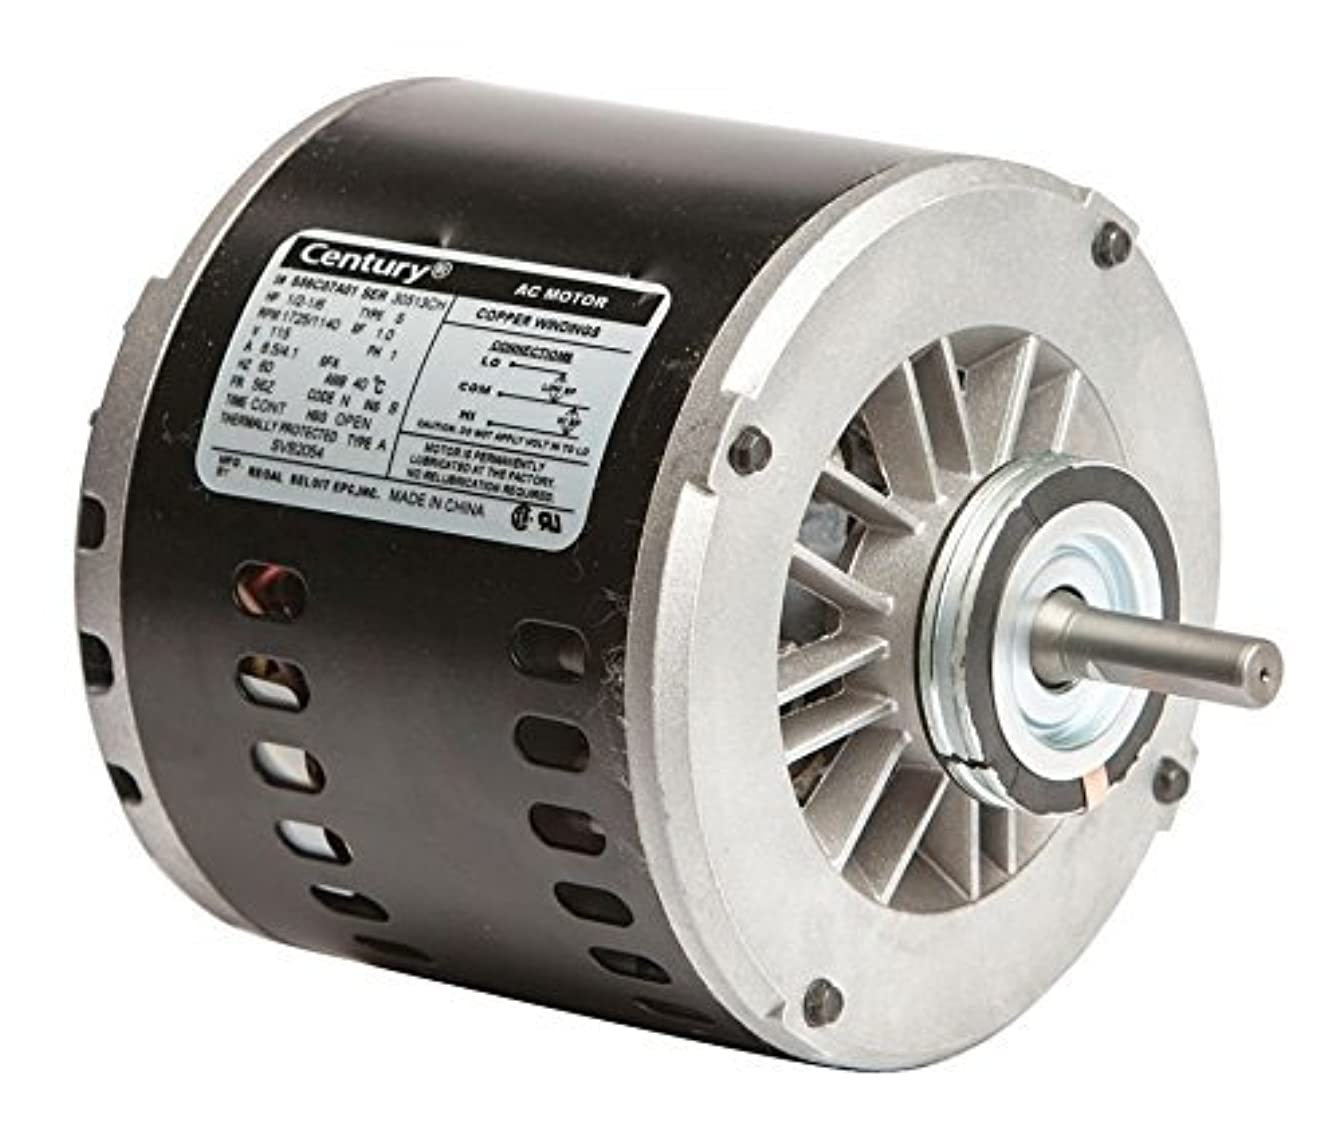 Century SVB2054 1/2-1/6 HP, 1725/1140 RPM, 56Z Frame, CCWLE Rotation, 1/2-Inch by 1-5/8-Inch Flat Shaft Evaporative Cooler Motor